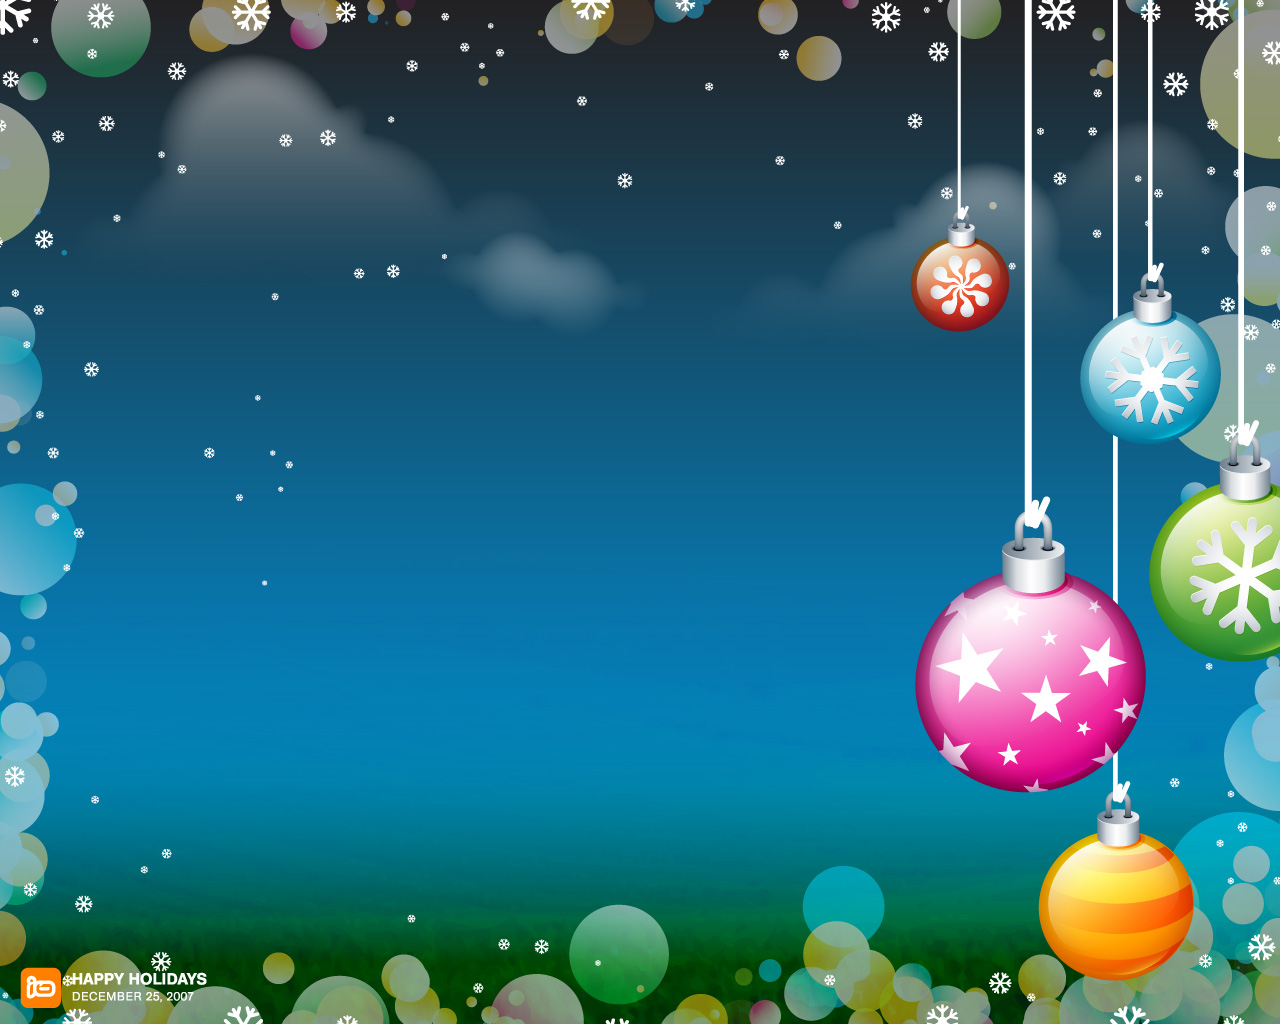 Christmas decorations vector wallpaper terry howerton for Find christmas decorations